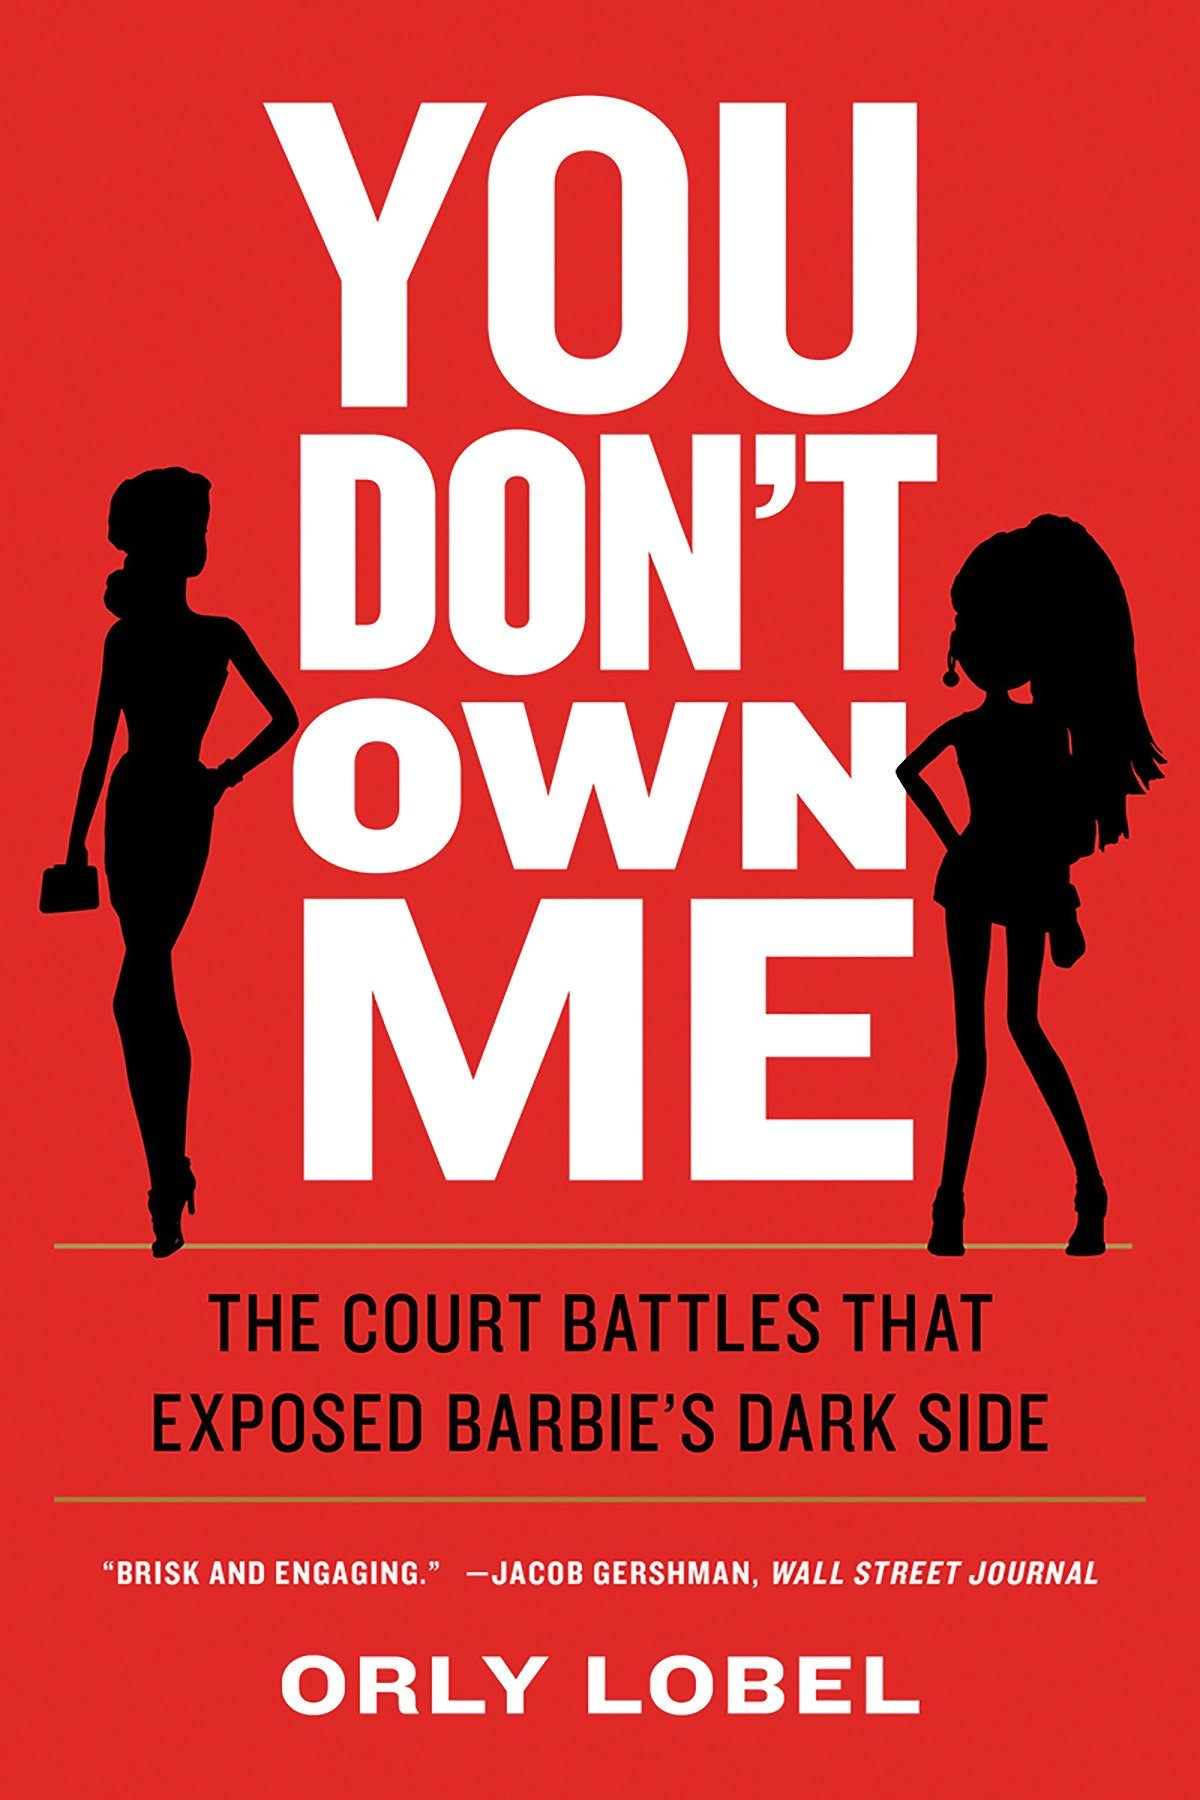 You Don't Own Me: The Court Battles That Exposed Barbie's Dark Side